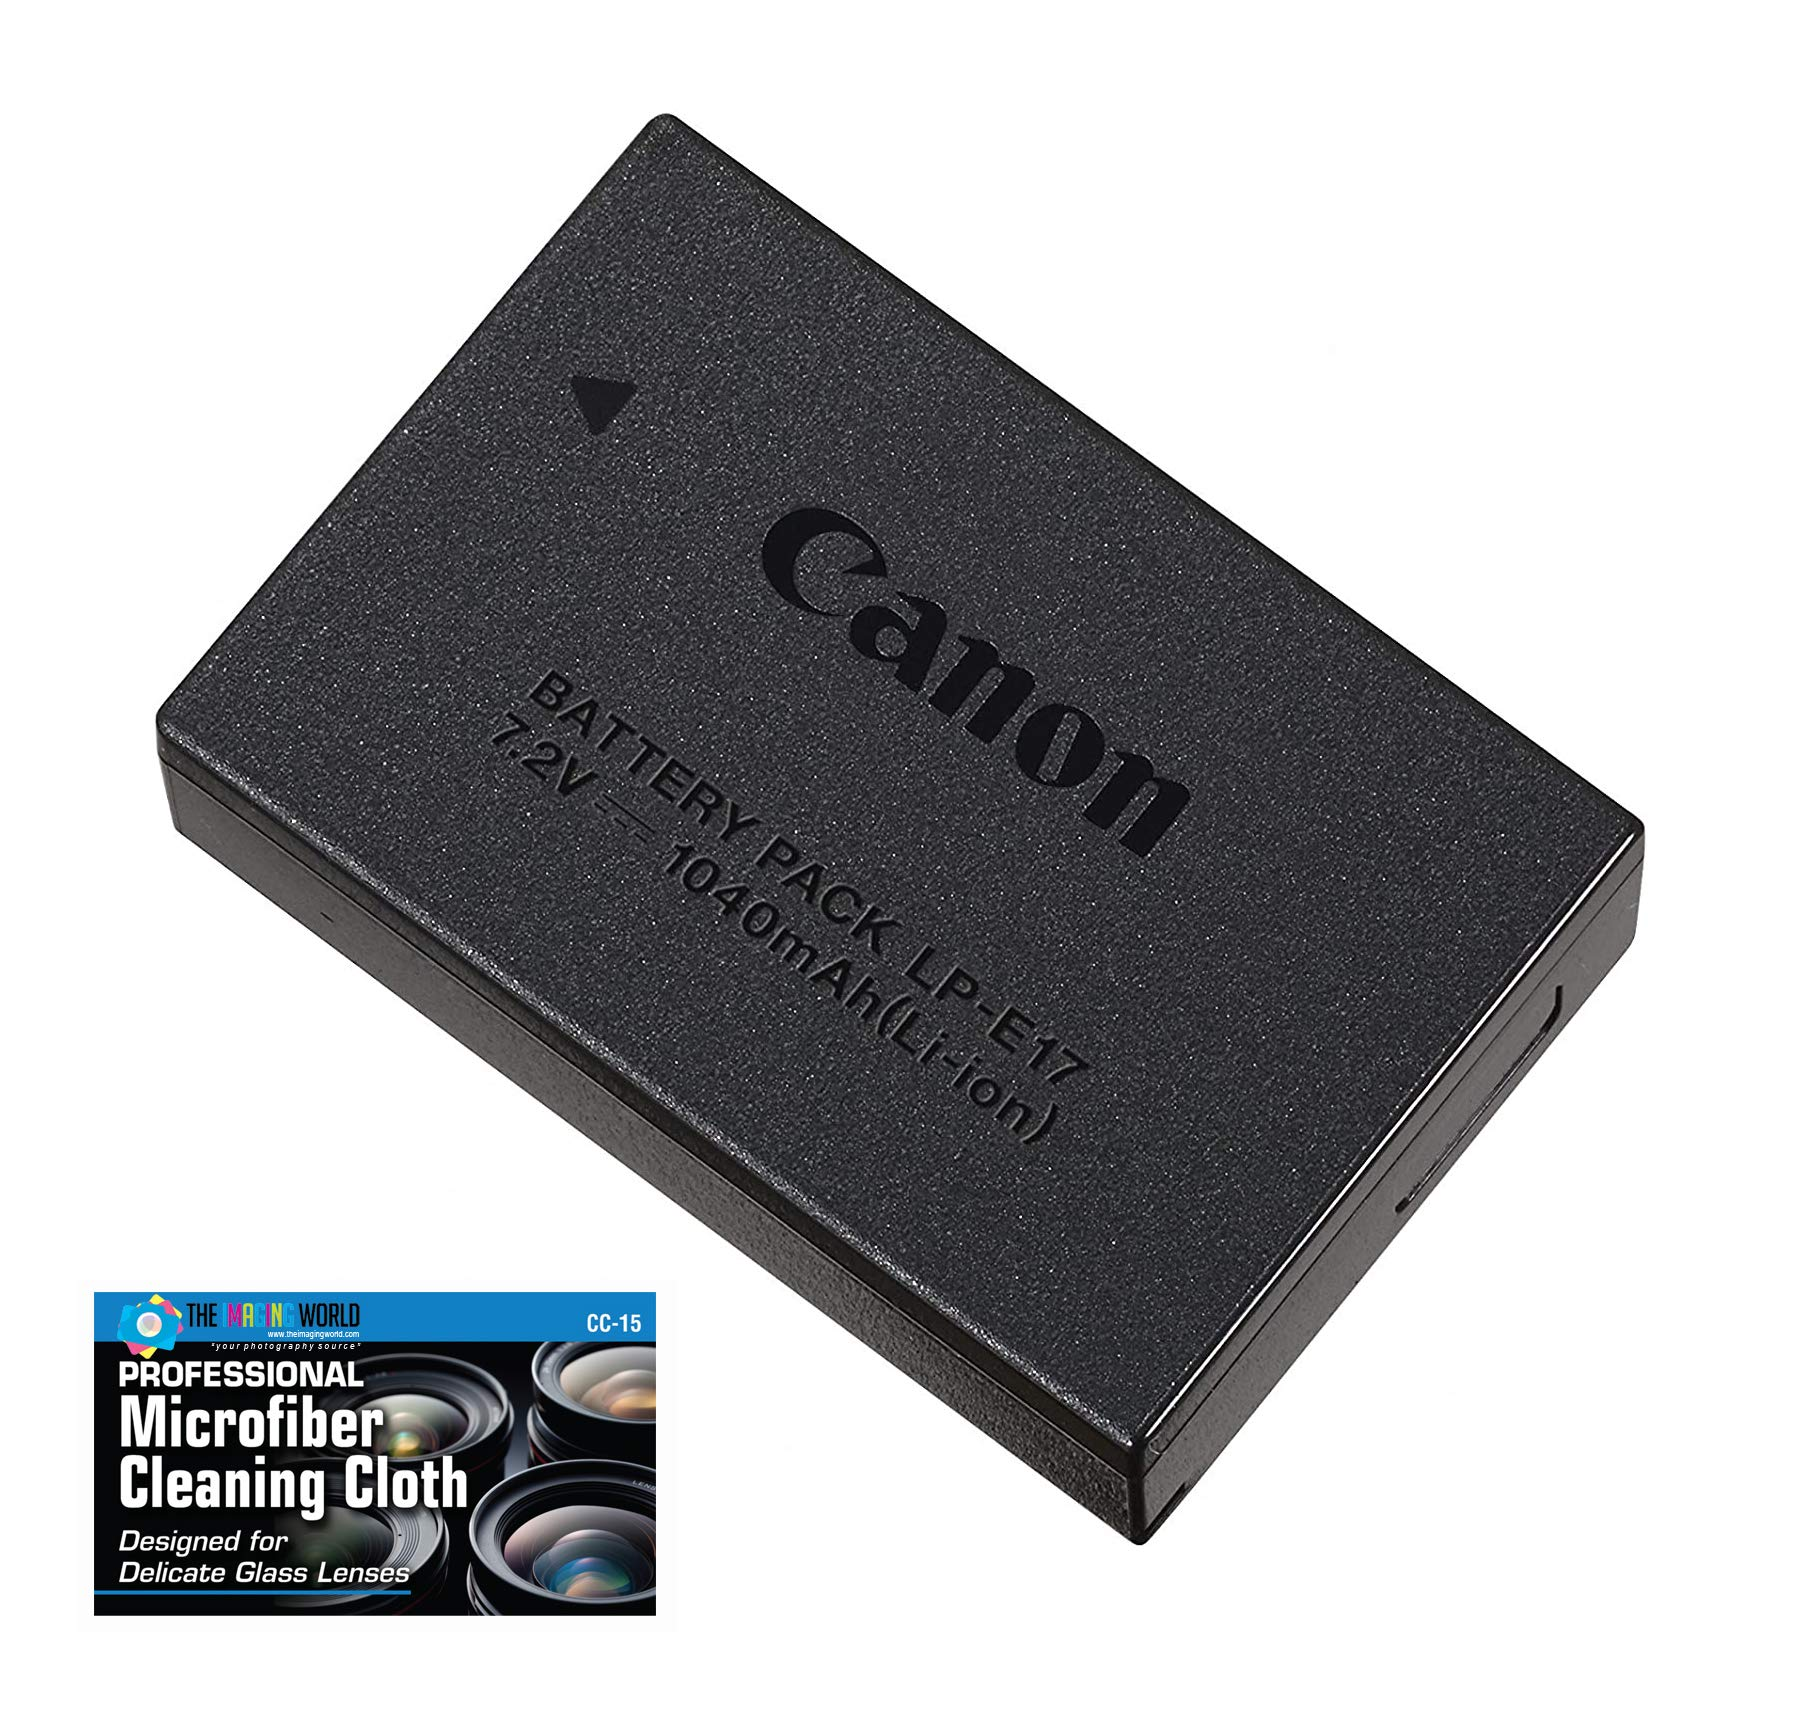 Canon LP-E17 Rechargeable Lithium-Ion Battery Pack for Canon EOS RP, 77D, M6, M6 Mark II, M5, M3, Rebel T8i, T7i, T6i, T6s, SL3, SL2 Camera Kit - Retail Packaging -with Micro Fiber Cloth